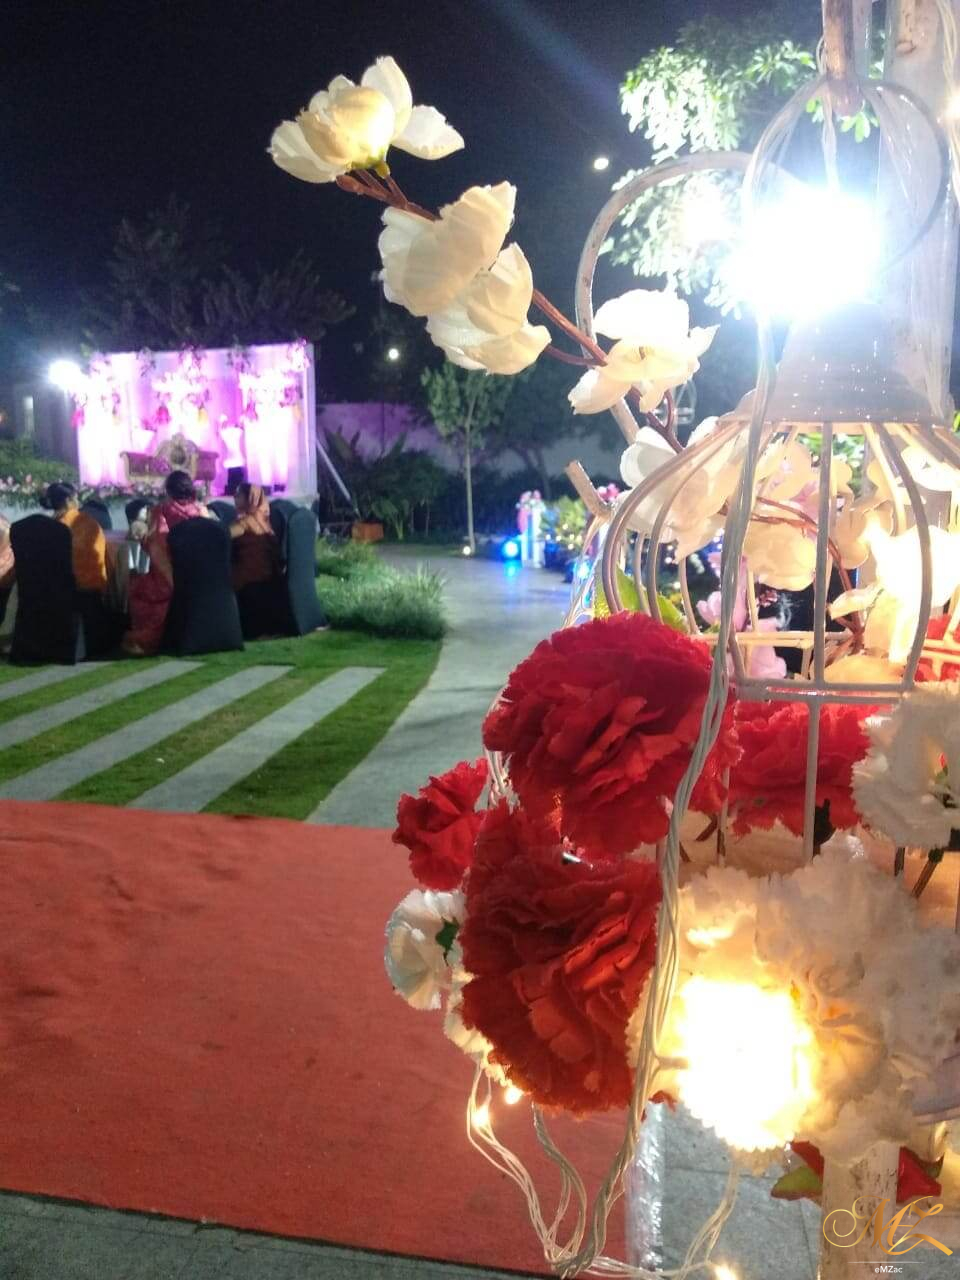 person, festival, crowd, lighting, flower, plant, petal